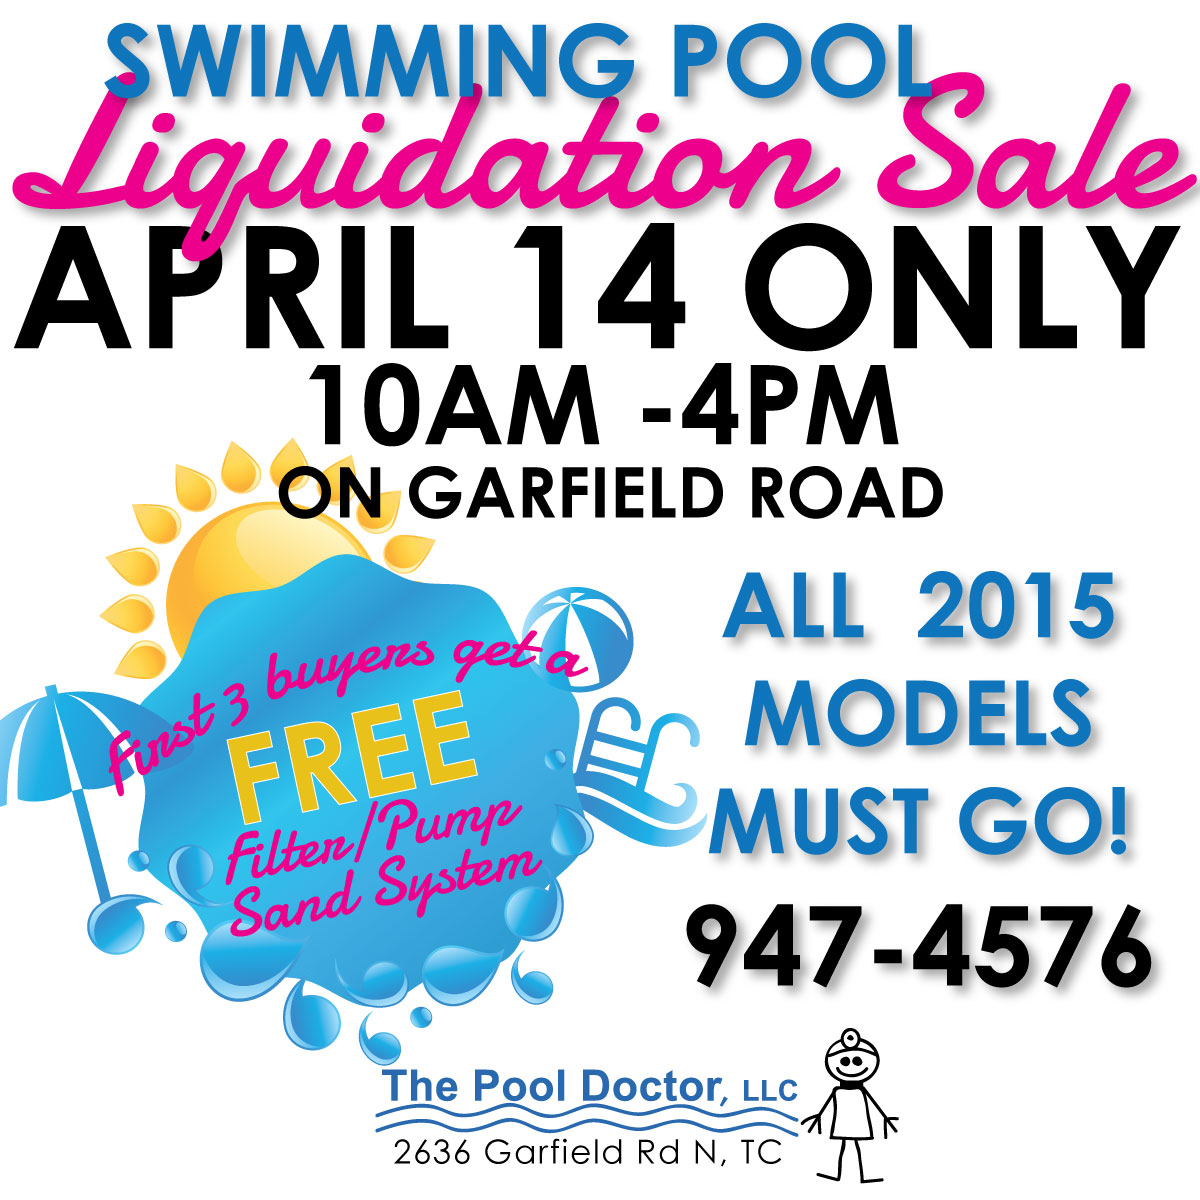 The Pool Doctor, LLC Pool Liquidation Sale